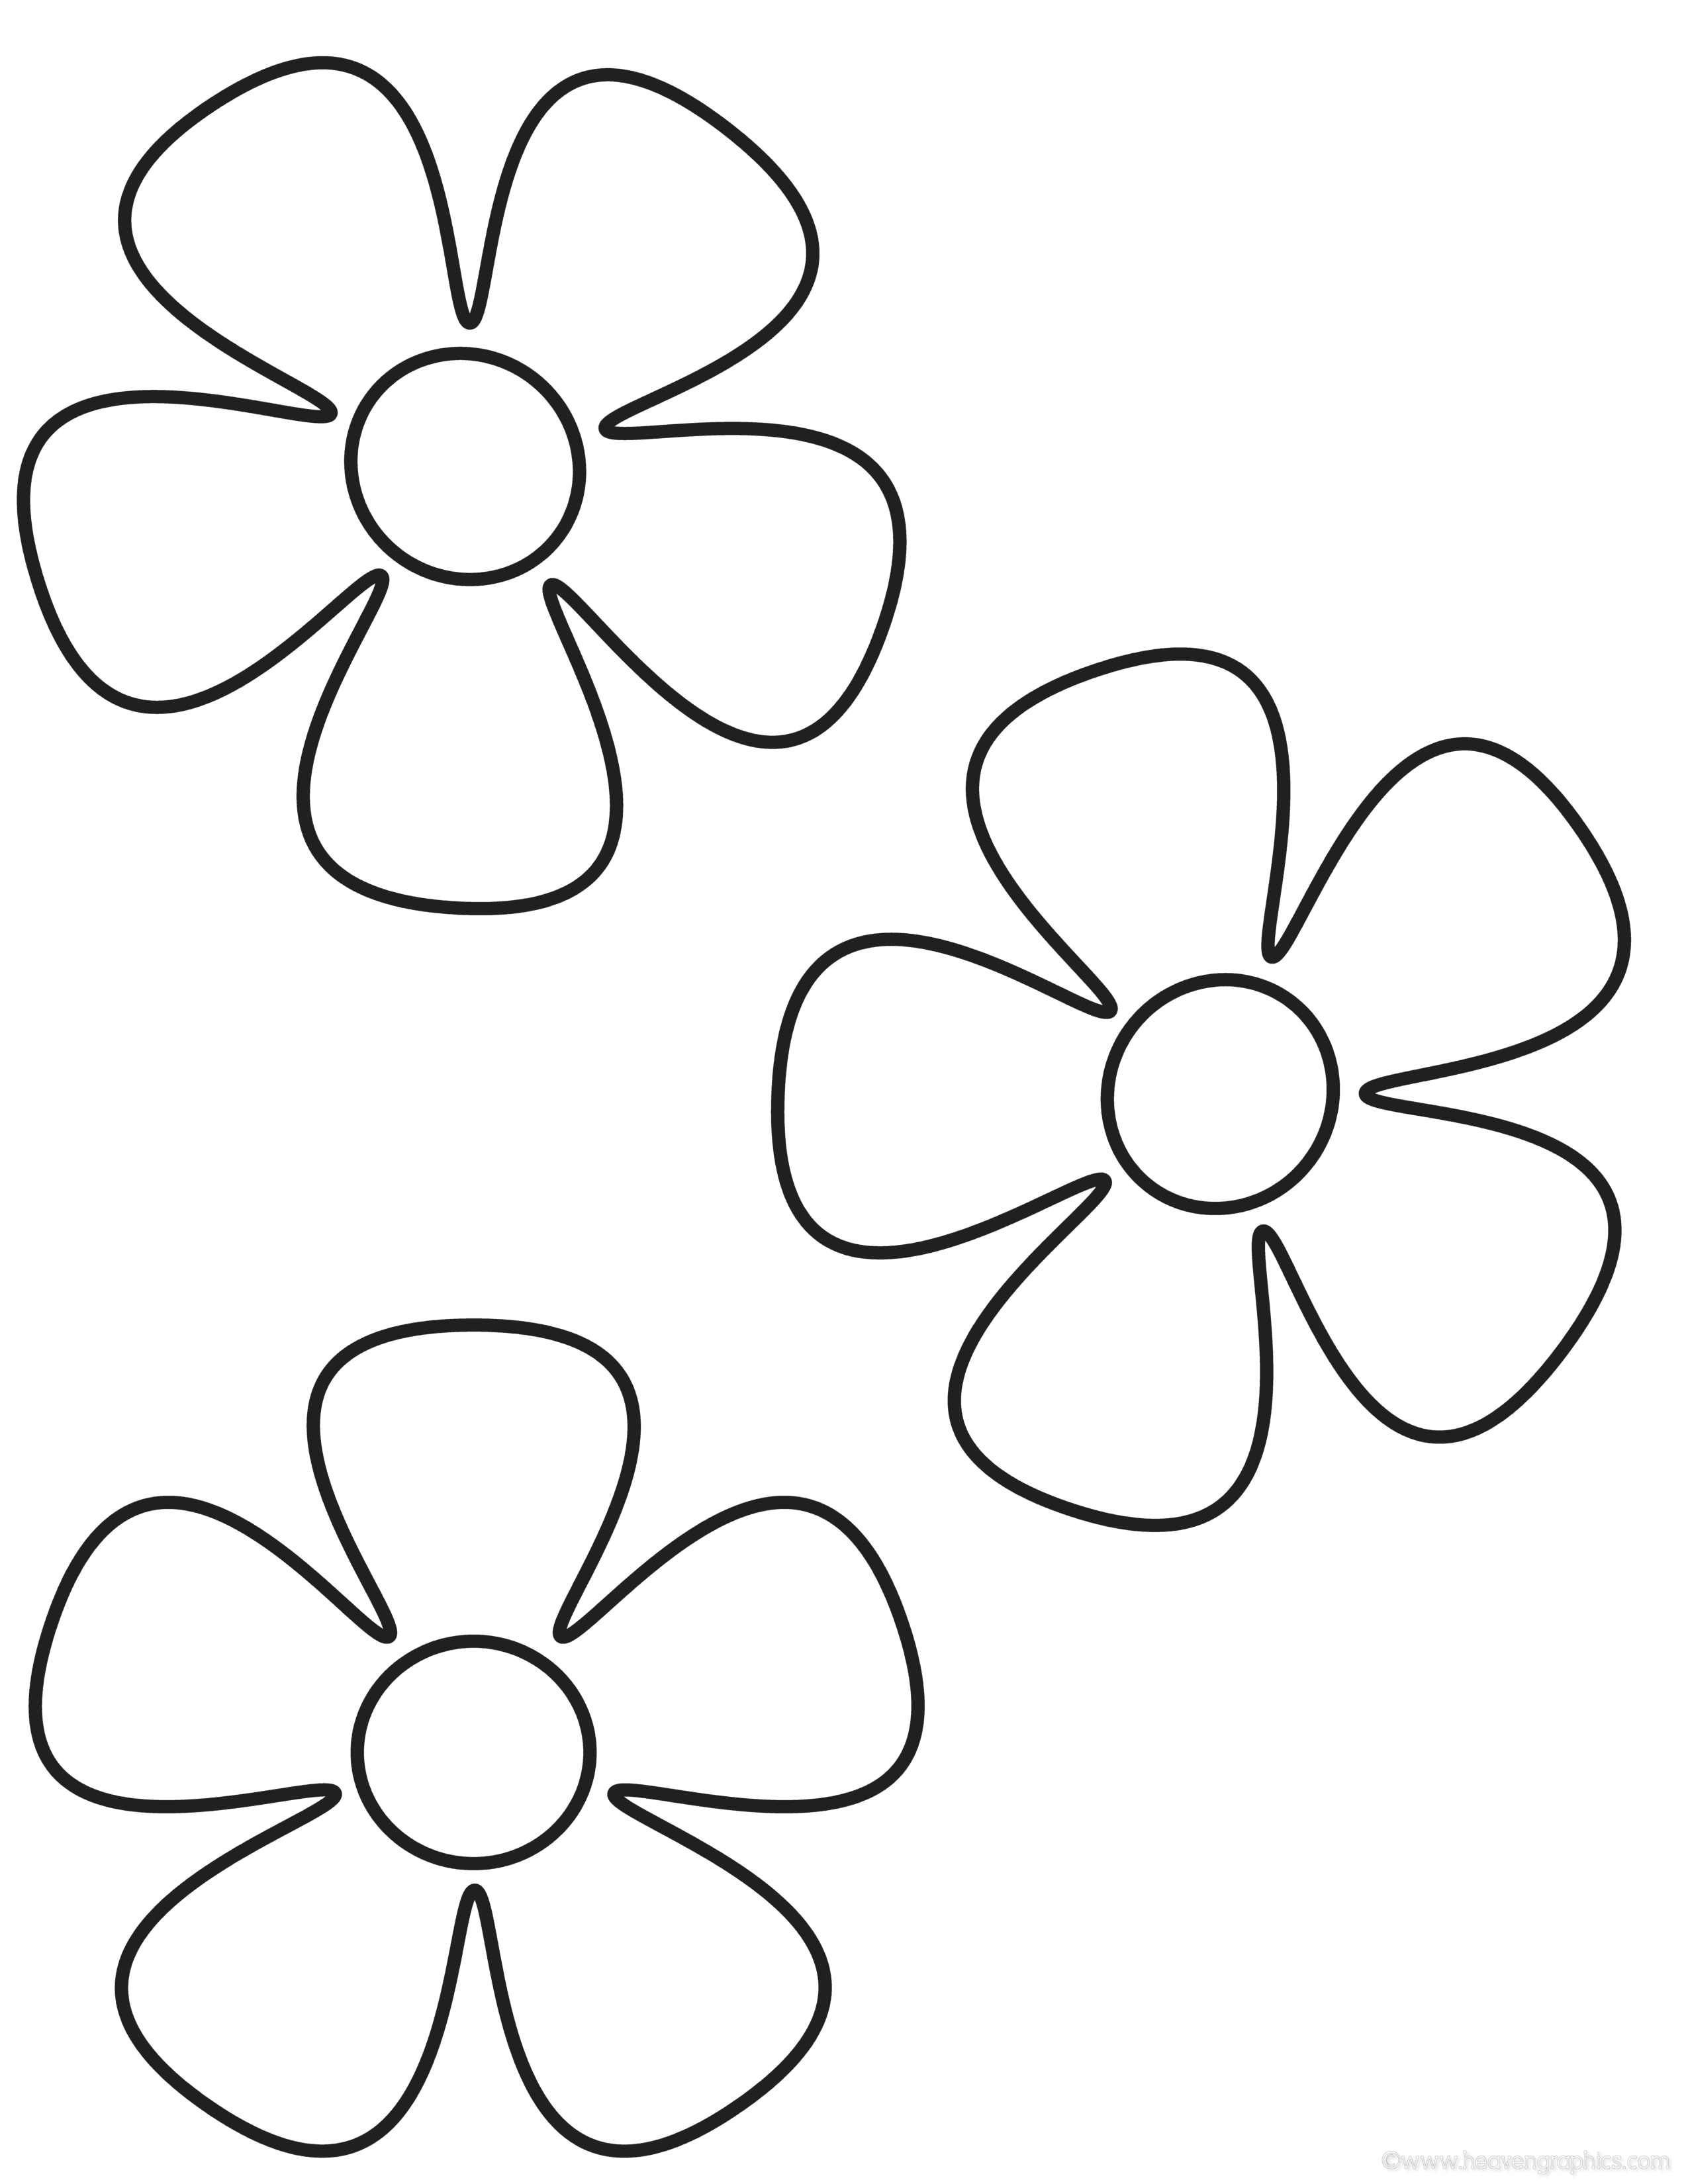 childrens coloring pages flowers free easy to print flower coloring pages tulamama childrens pages coloring flowers